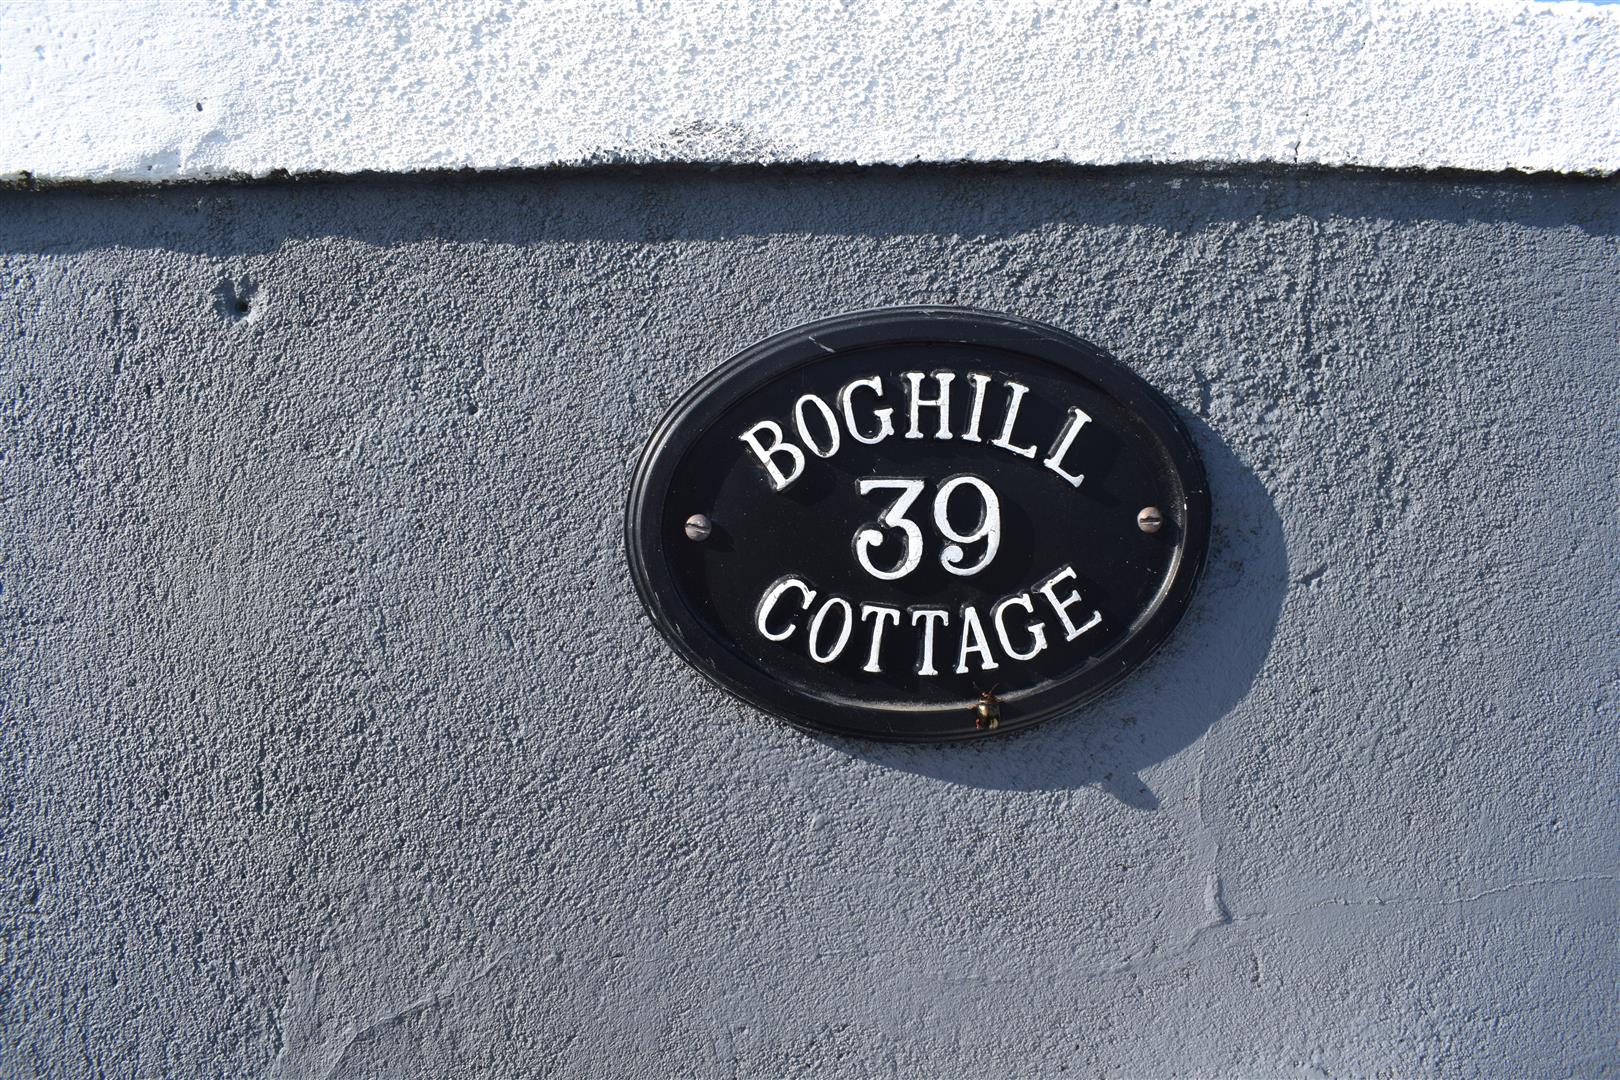 39 Boghill Road